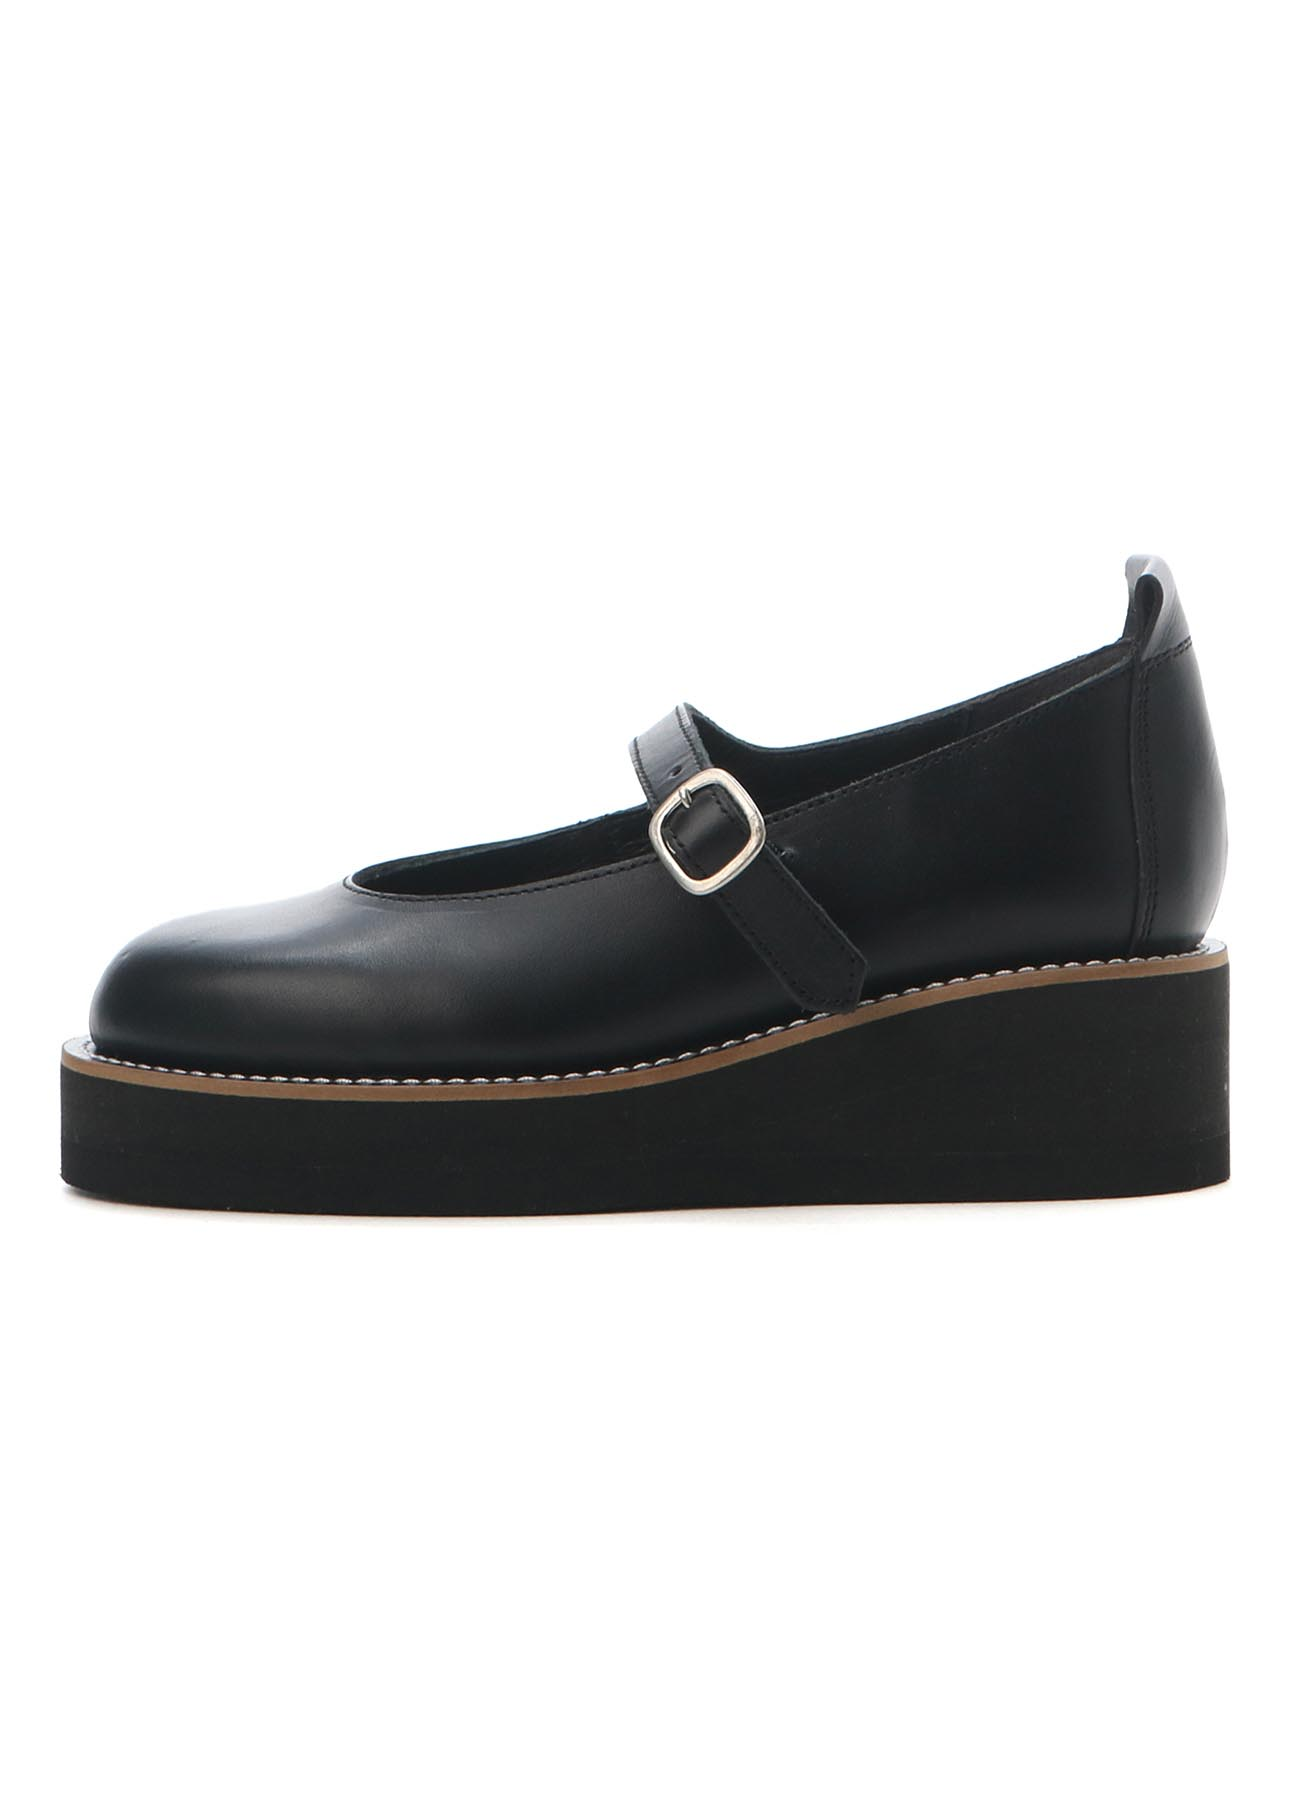 1,6mmTHICK HARD LEATHER WEDGE ONE STRAP